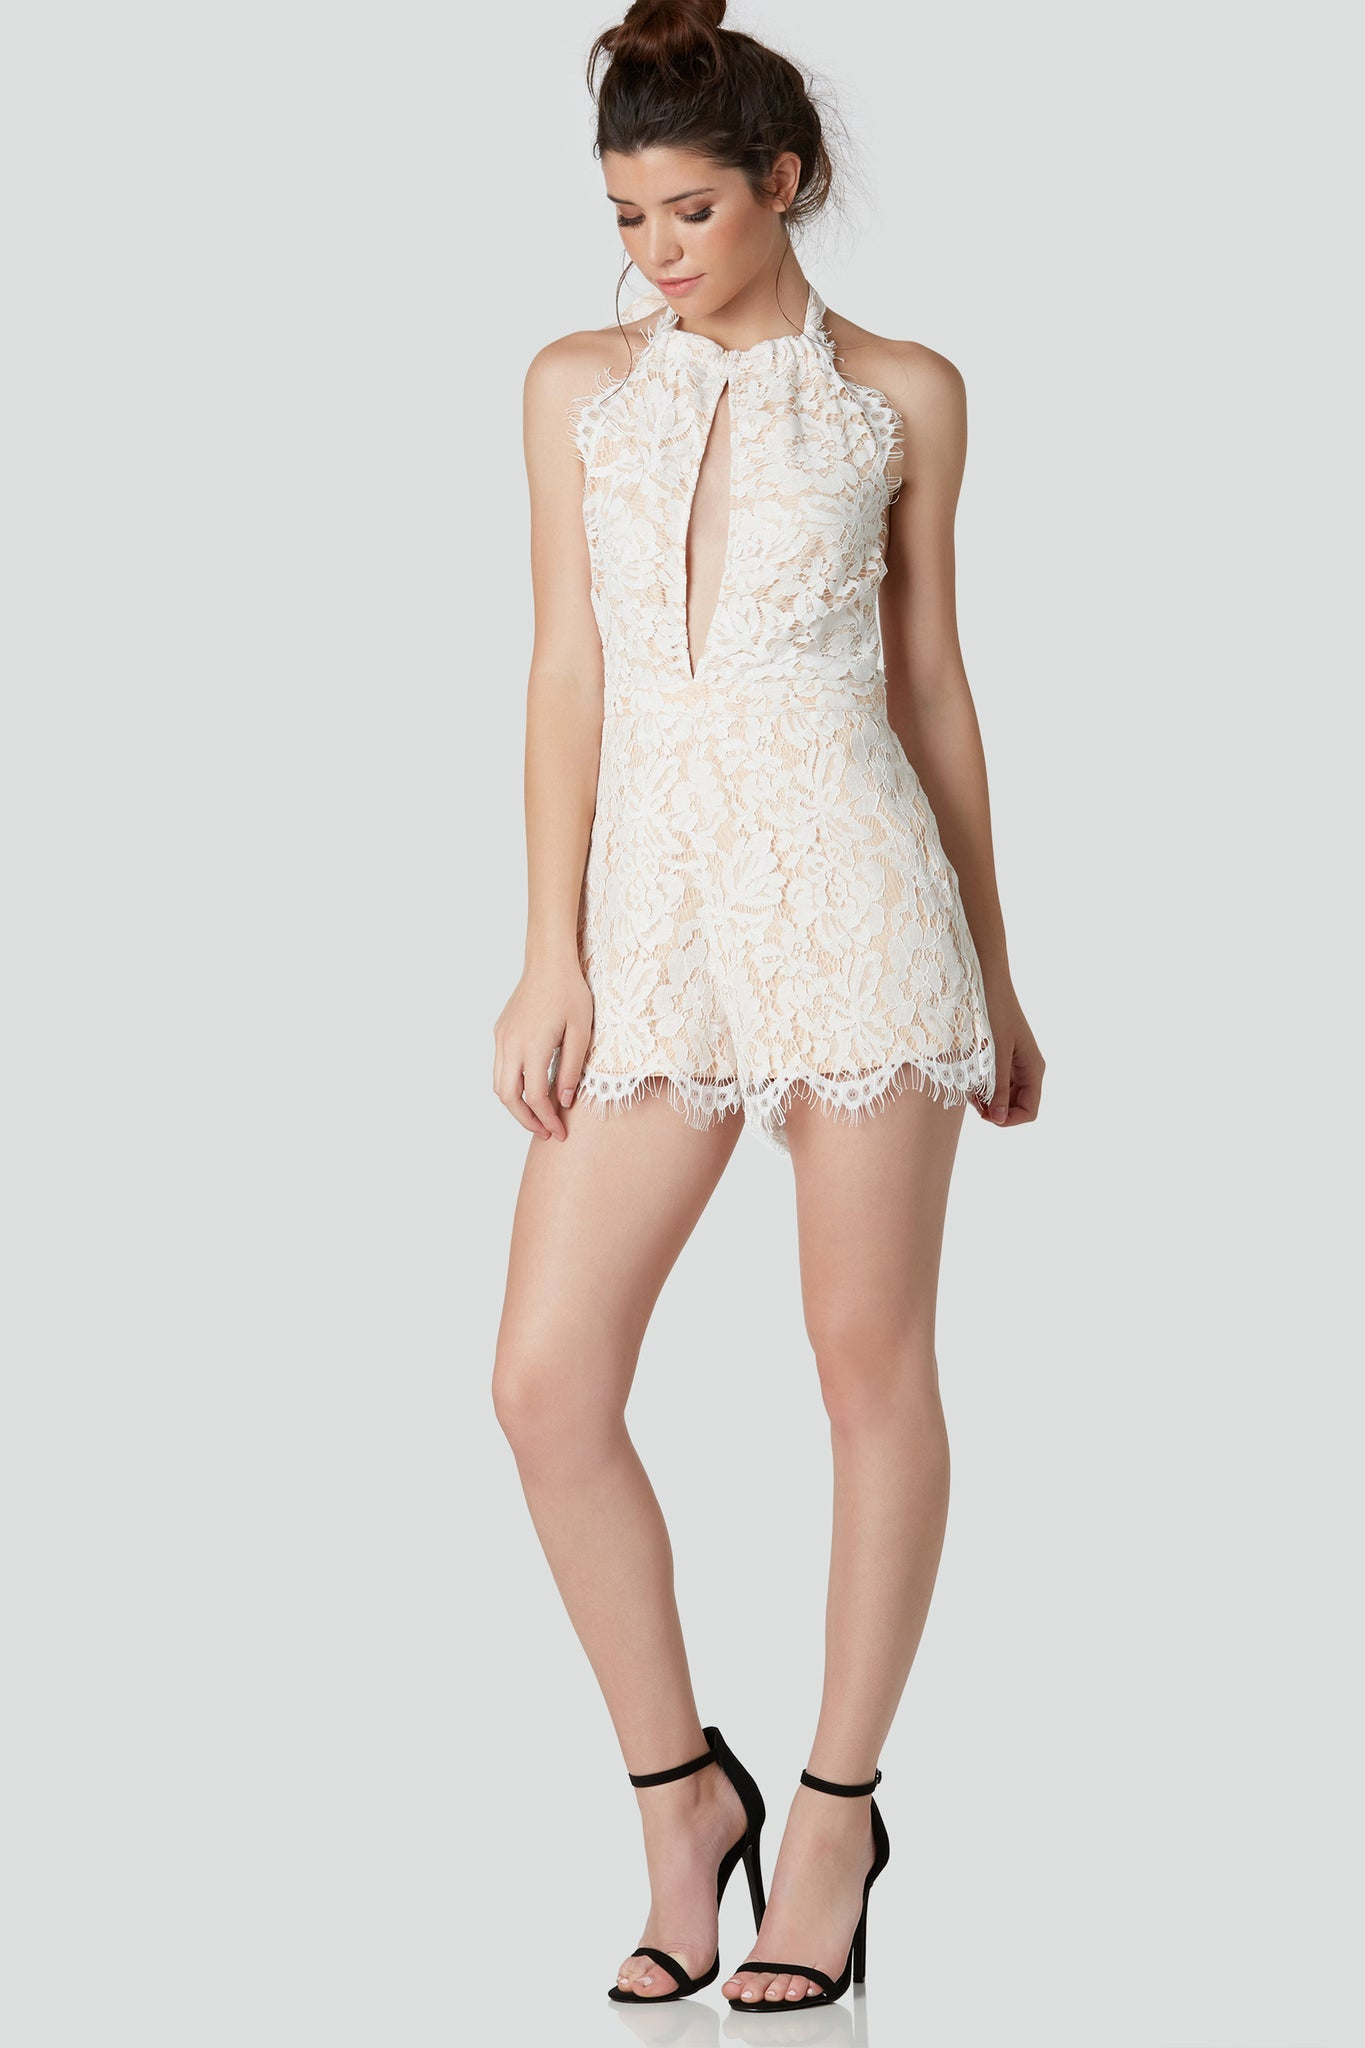 Elegant sleeveless romper with flattering halter neckline and bold keyhole cut out in front. Nude lining with lace overlay with eyelash trim detailing and back zip closure.